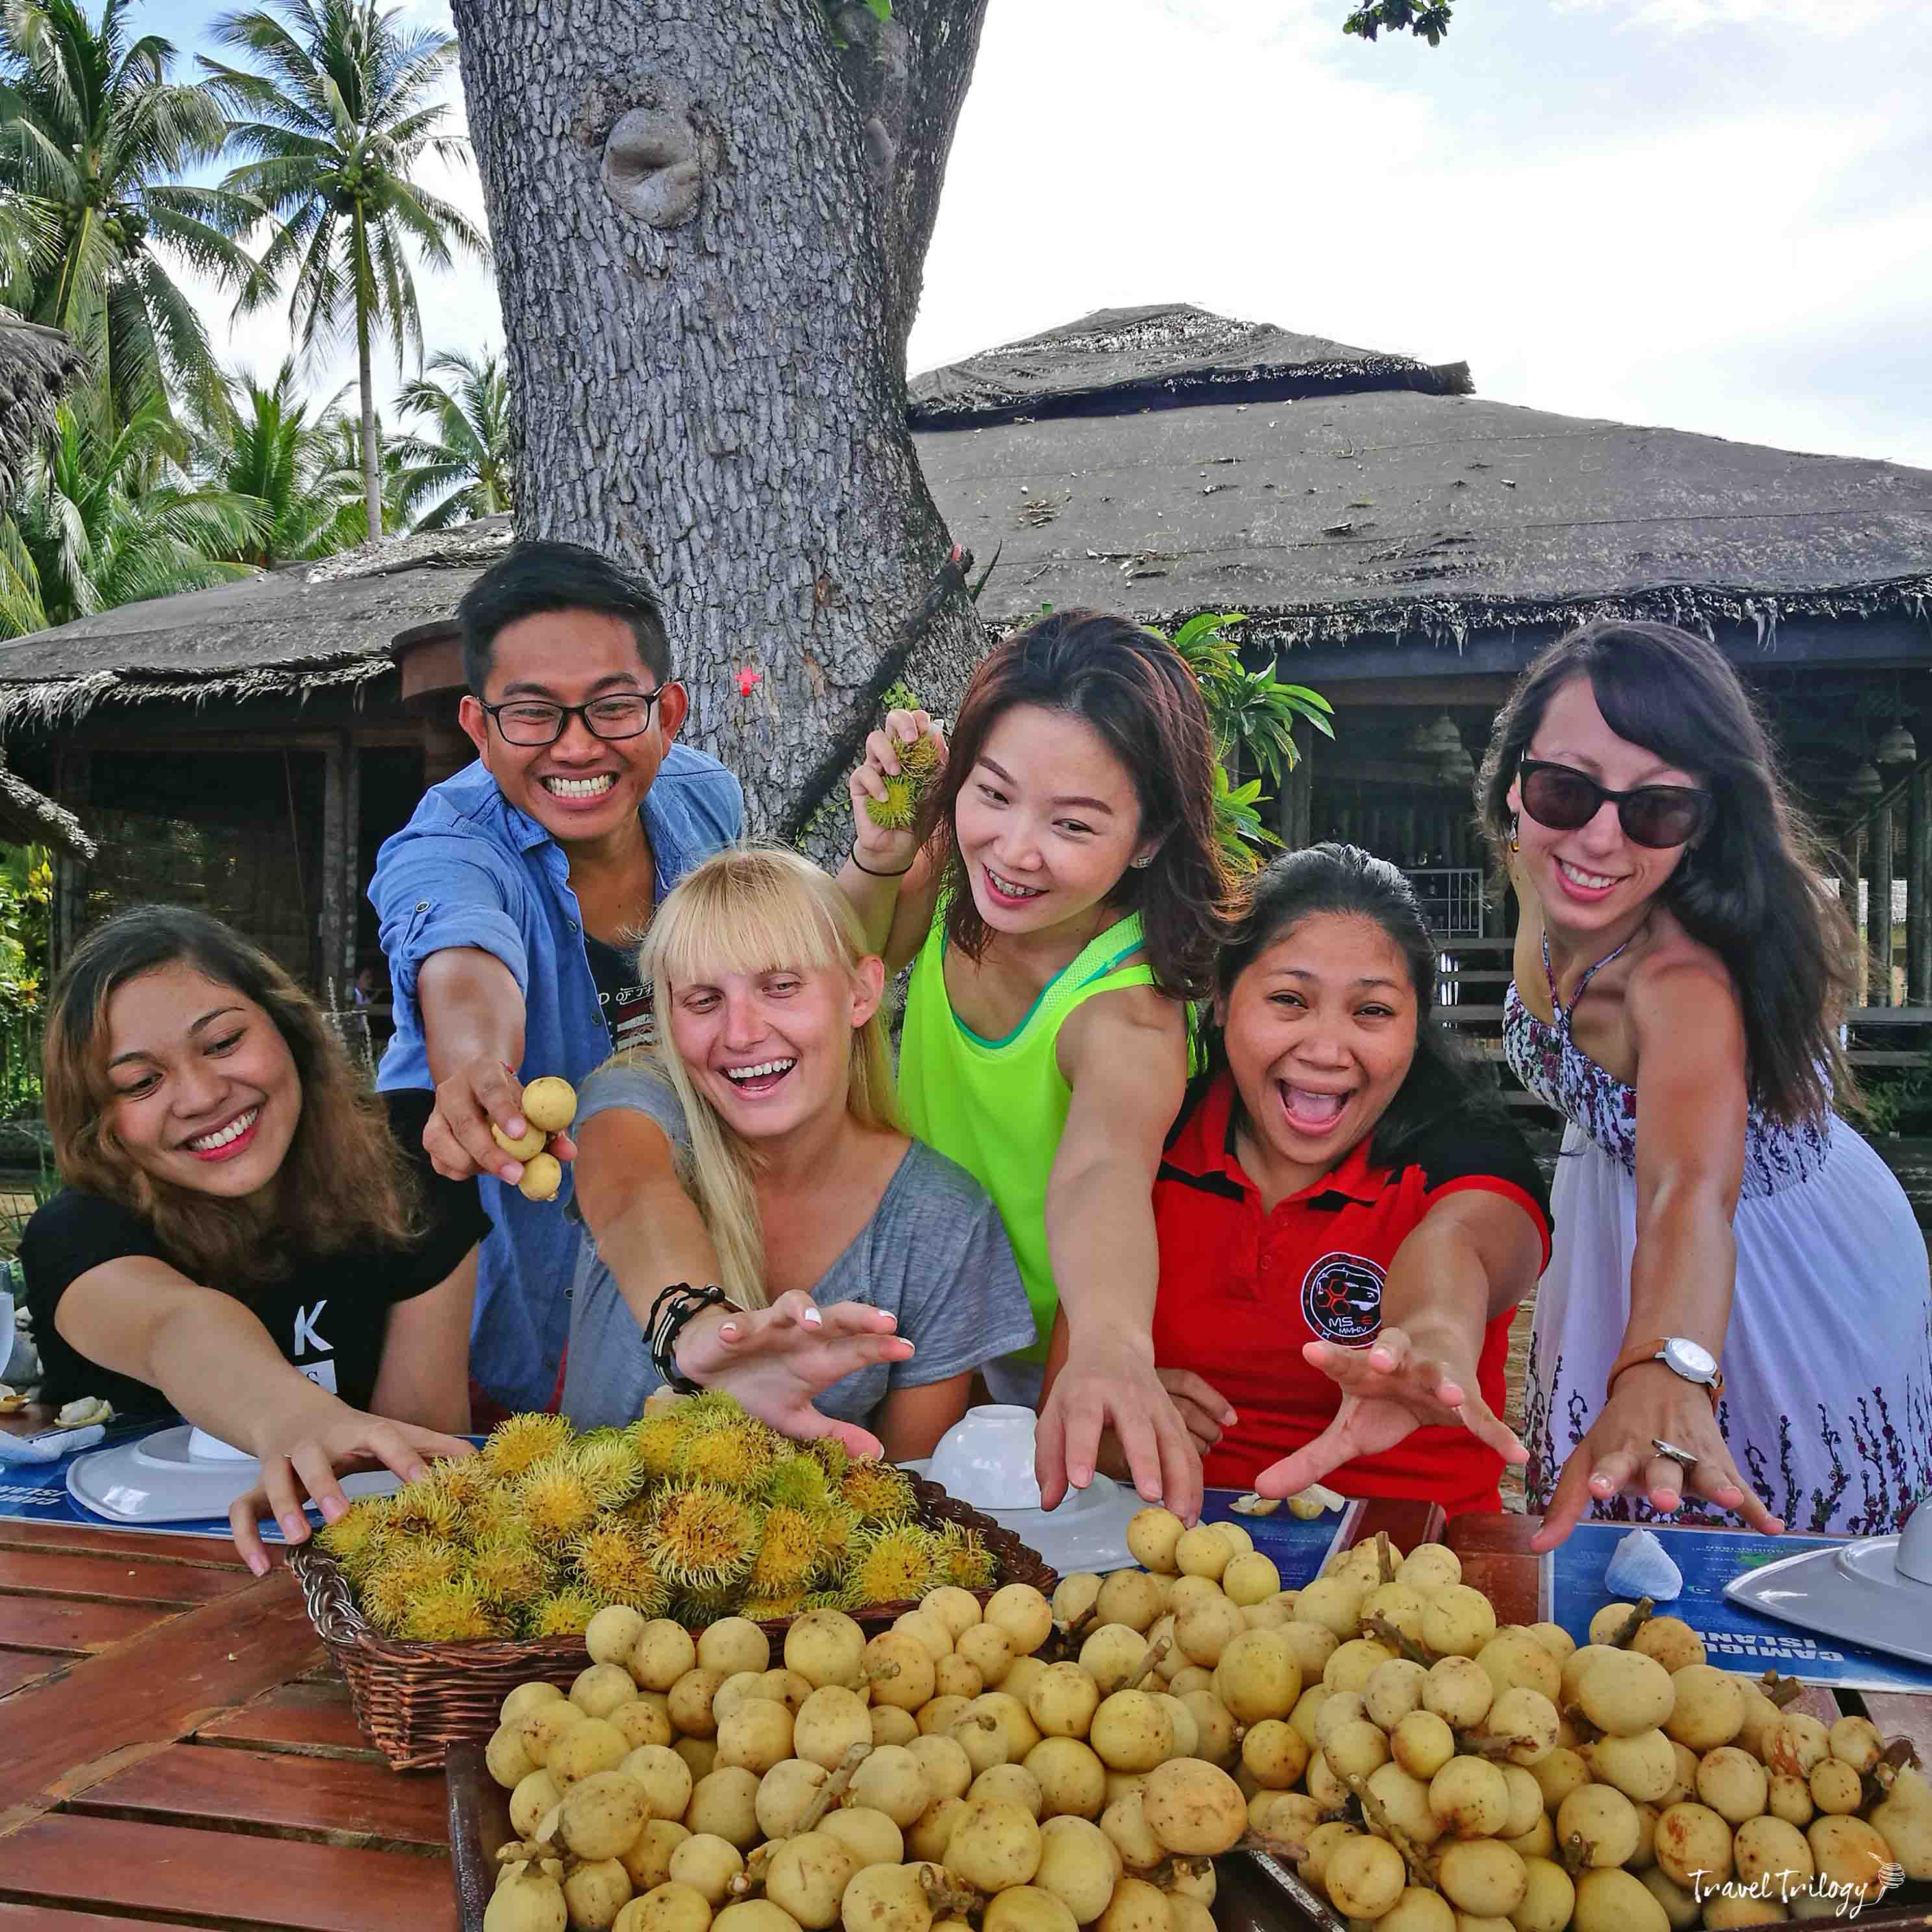 Camiguin Island: Come Again, Like It's The First Time